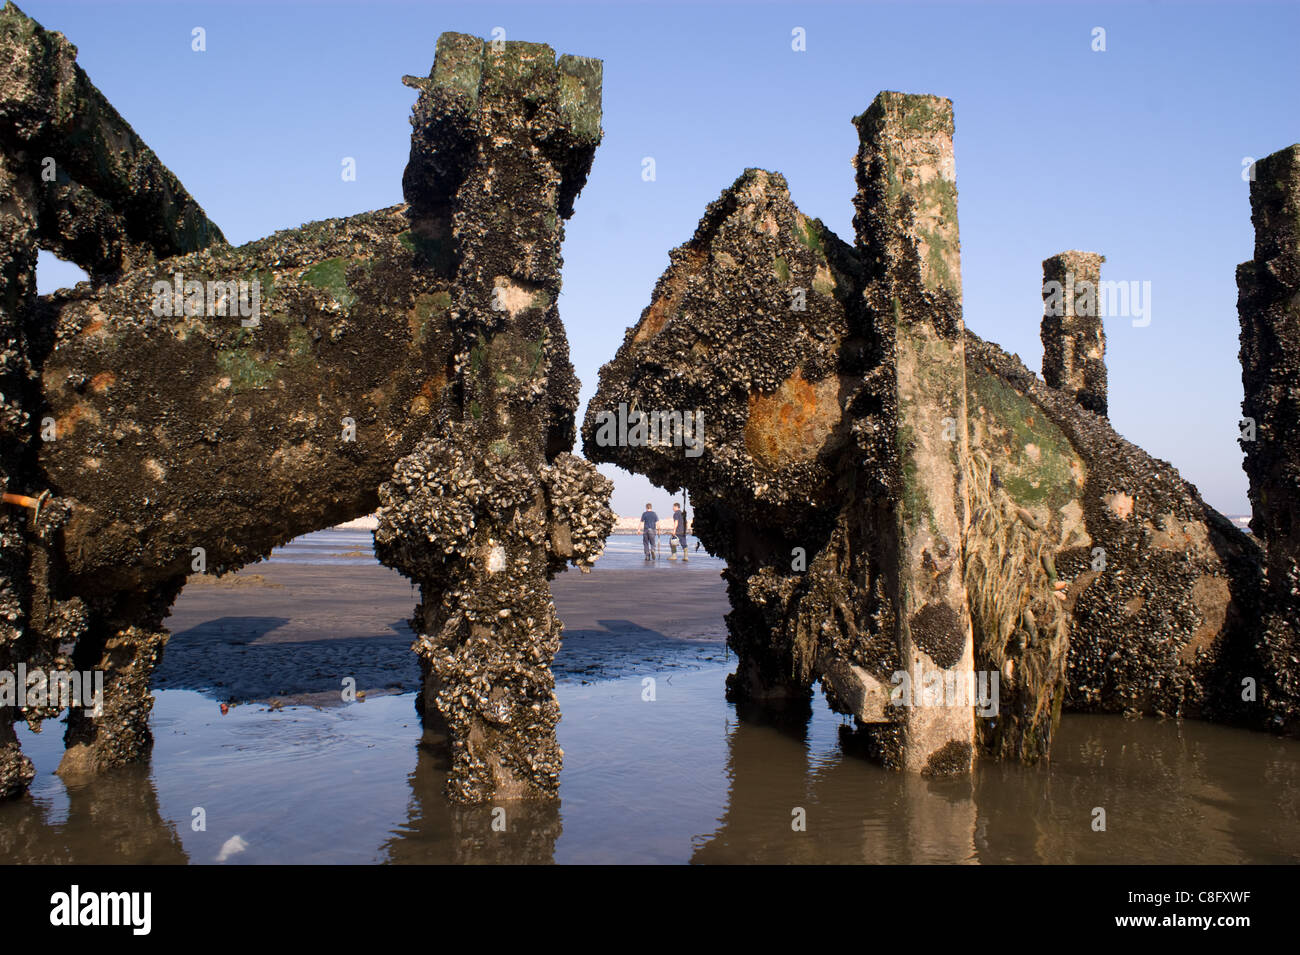 SHELL ENCRUSTED OLD SEWAGE OUTLET PIPE ON THE BEACH AT SEATON CAREW HARTLEPOOL WITH PEOPLE ON THE BEACH - Stock Image